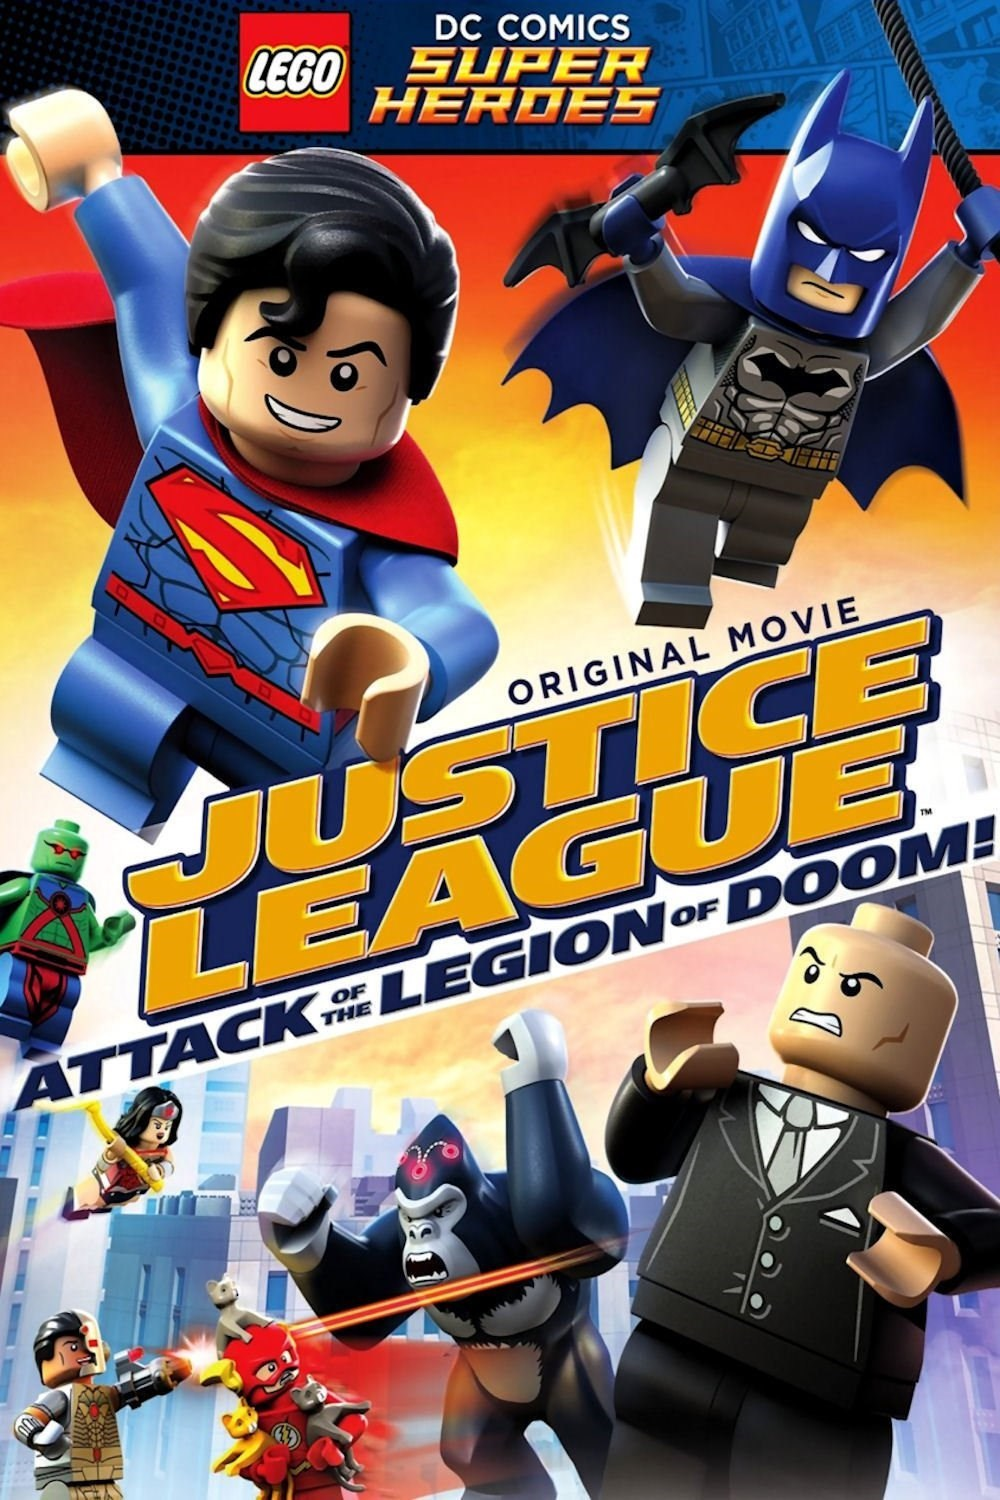 2-lego-dc-comics-attack-of-the-legion-of-doom